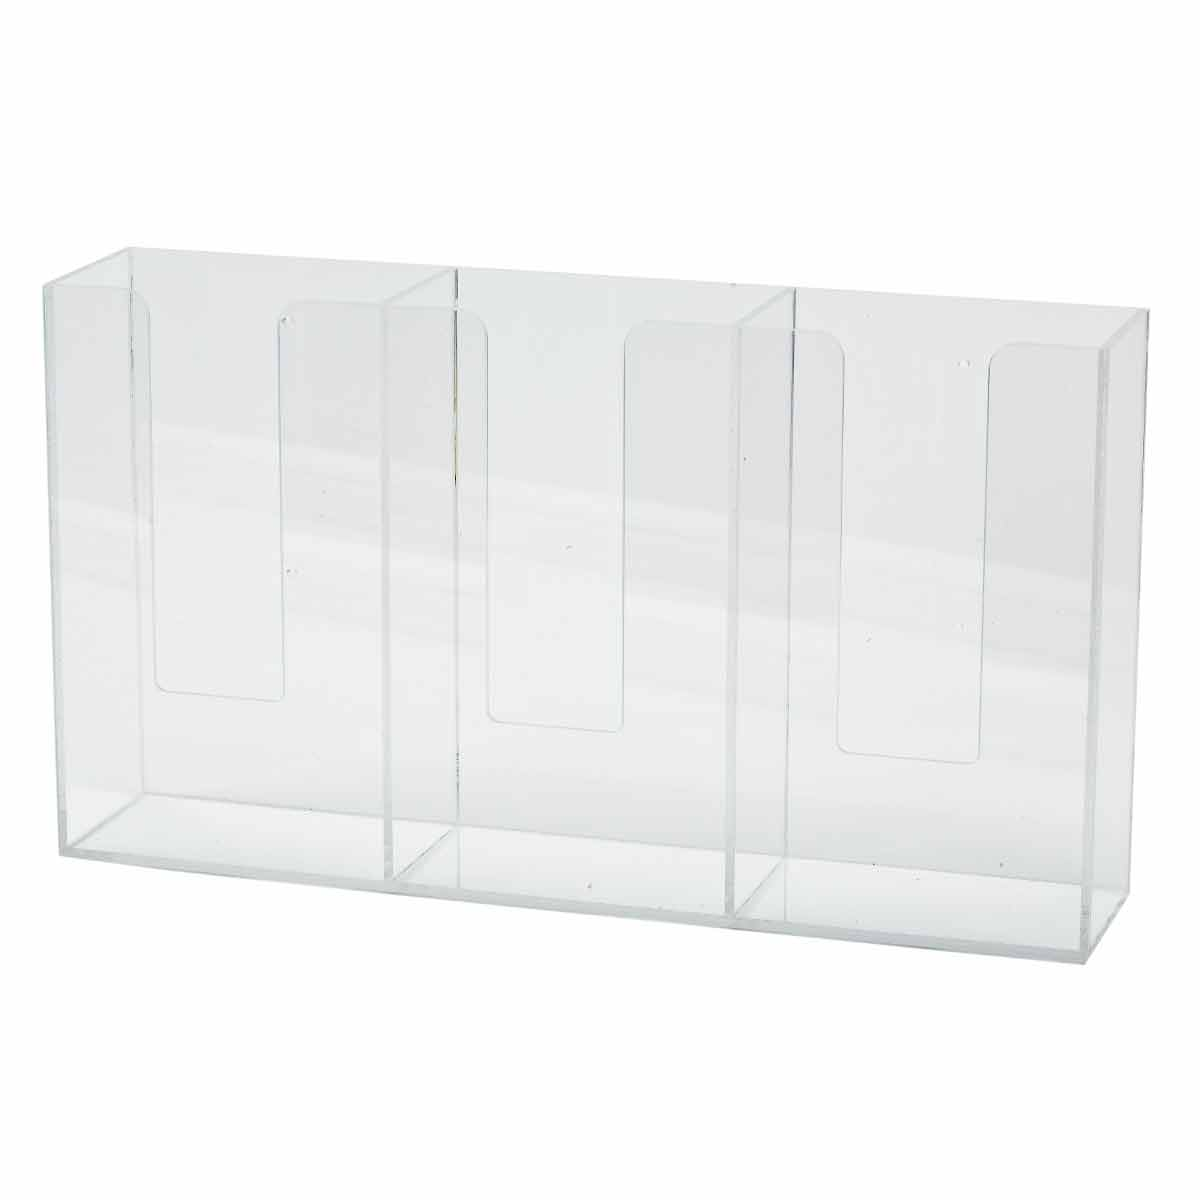 Brady® GD03 Triple Box Glove Dispenser, 3 Compartment, Surface/Wall Mount, Hinged Top Dispensing, Acrylic Glass, Clear